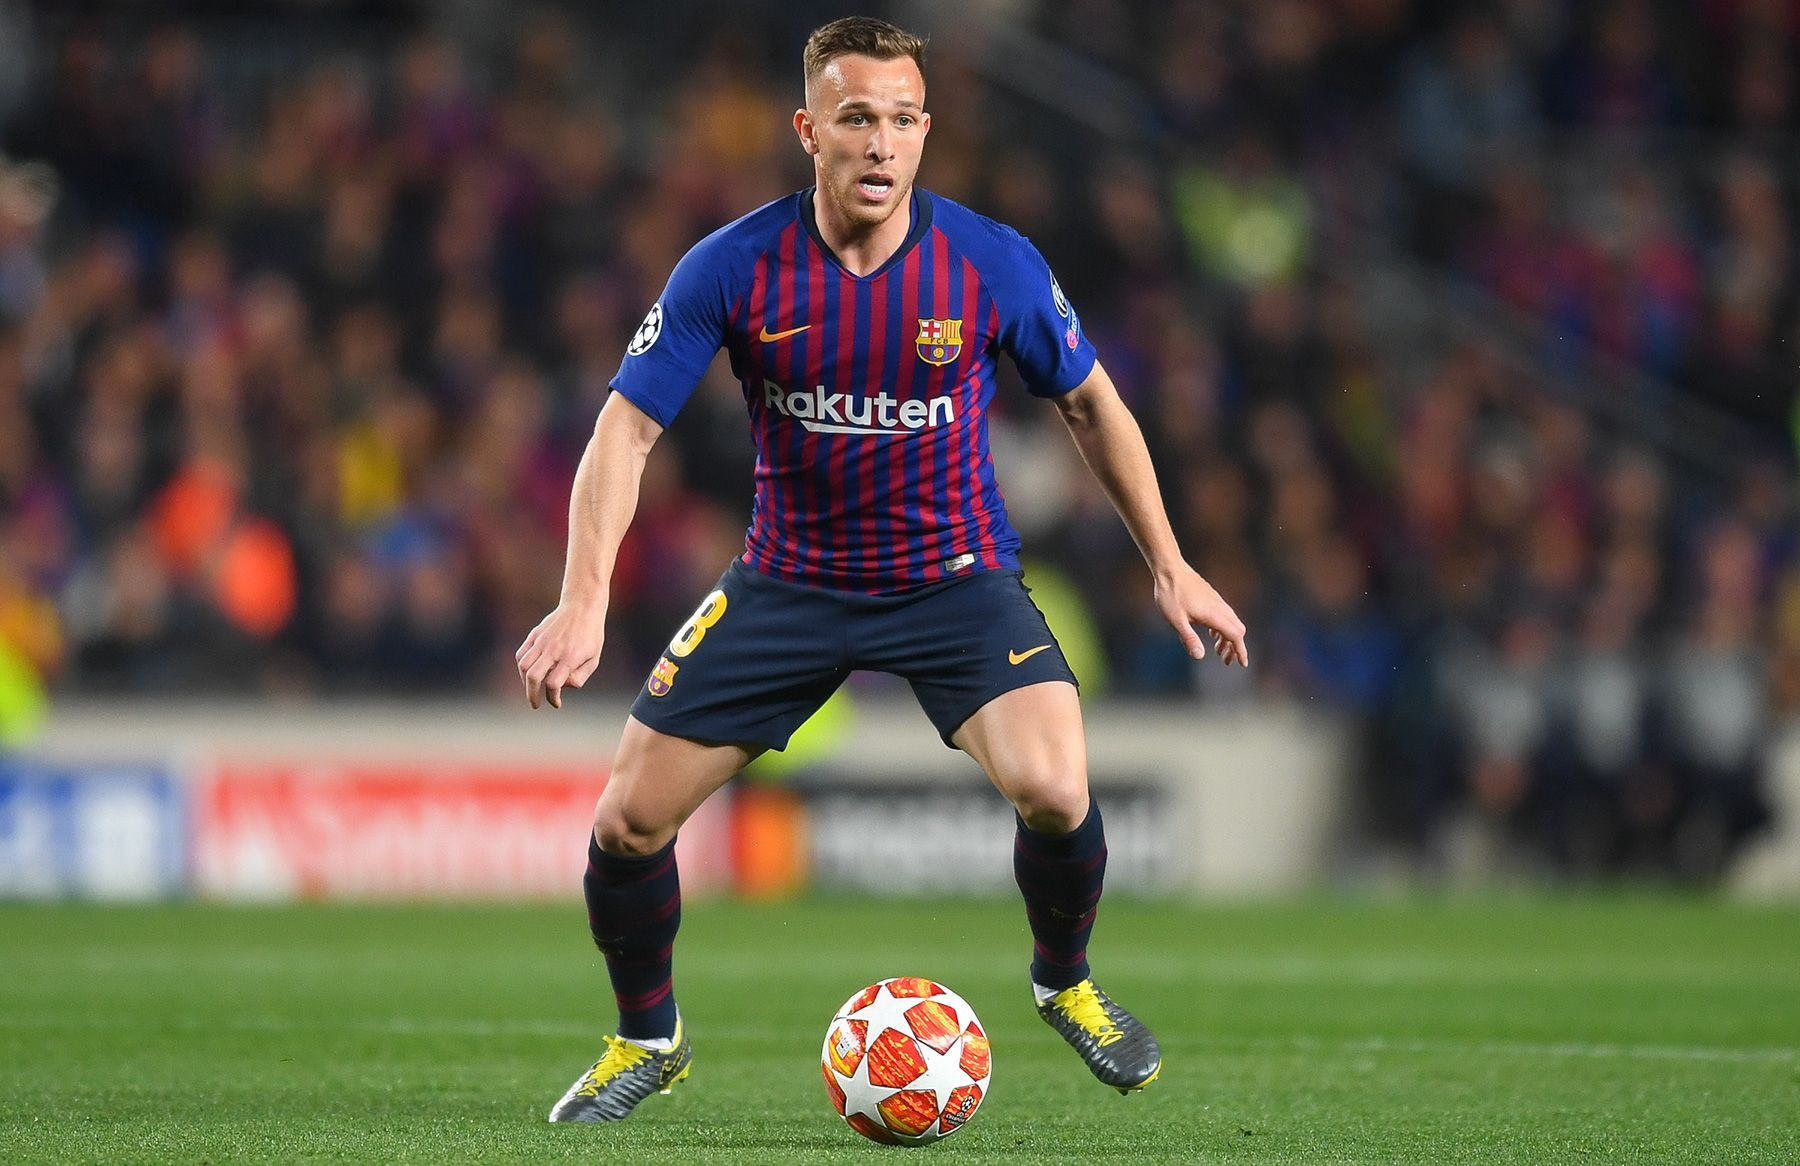 The special plan that Barça has for Arthur